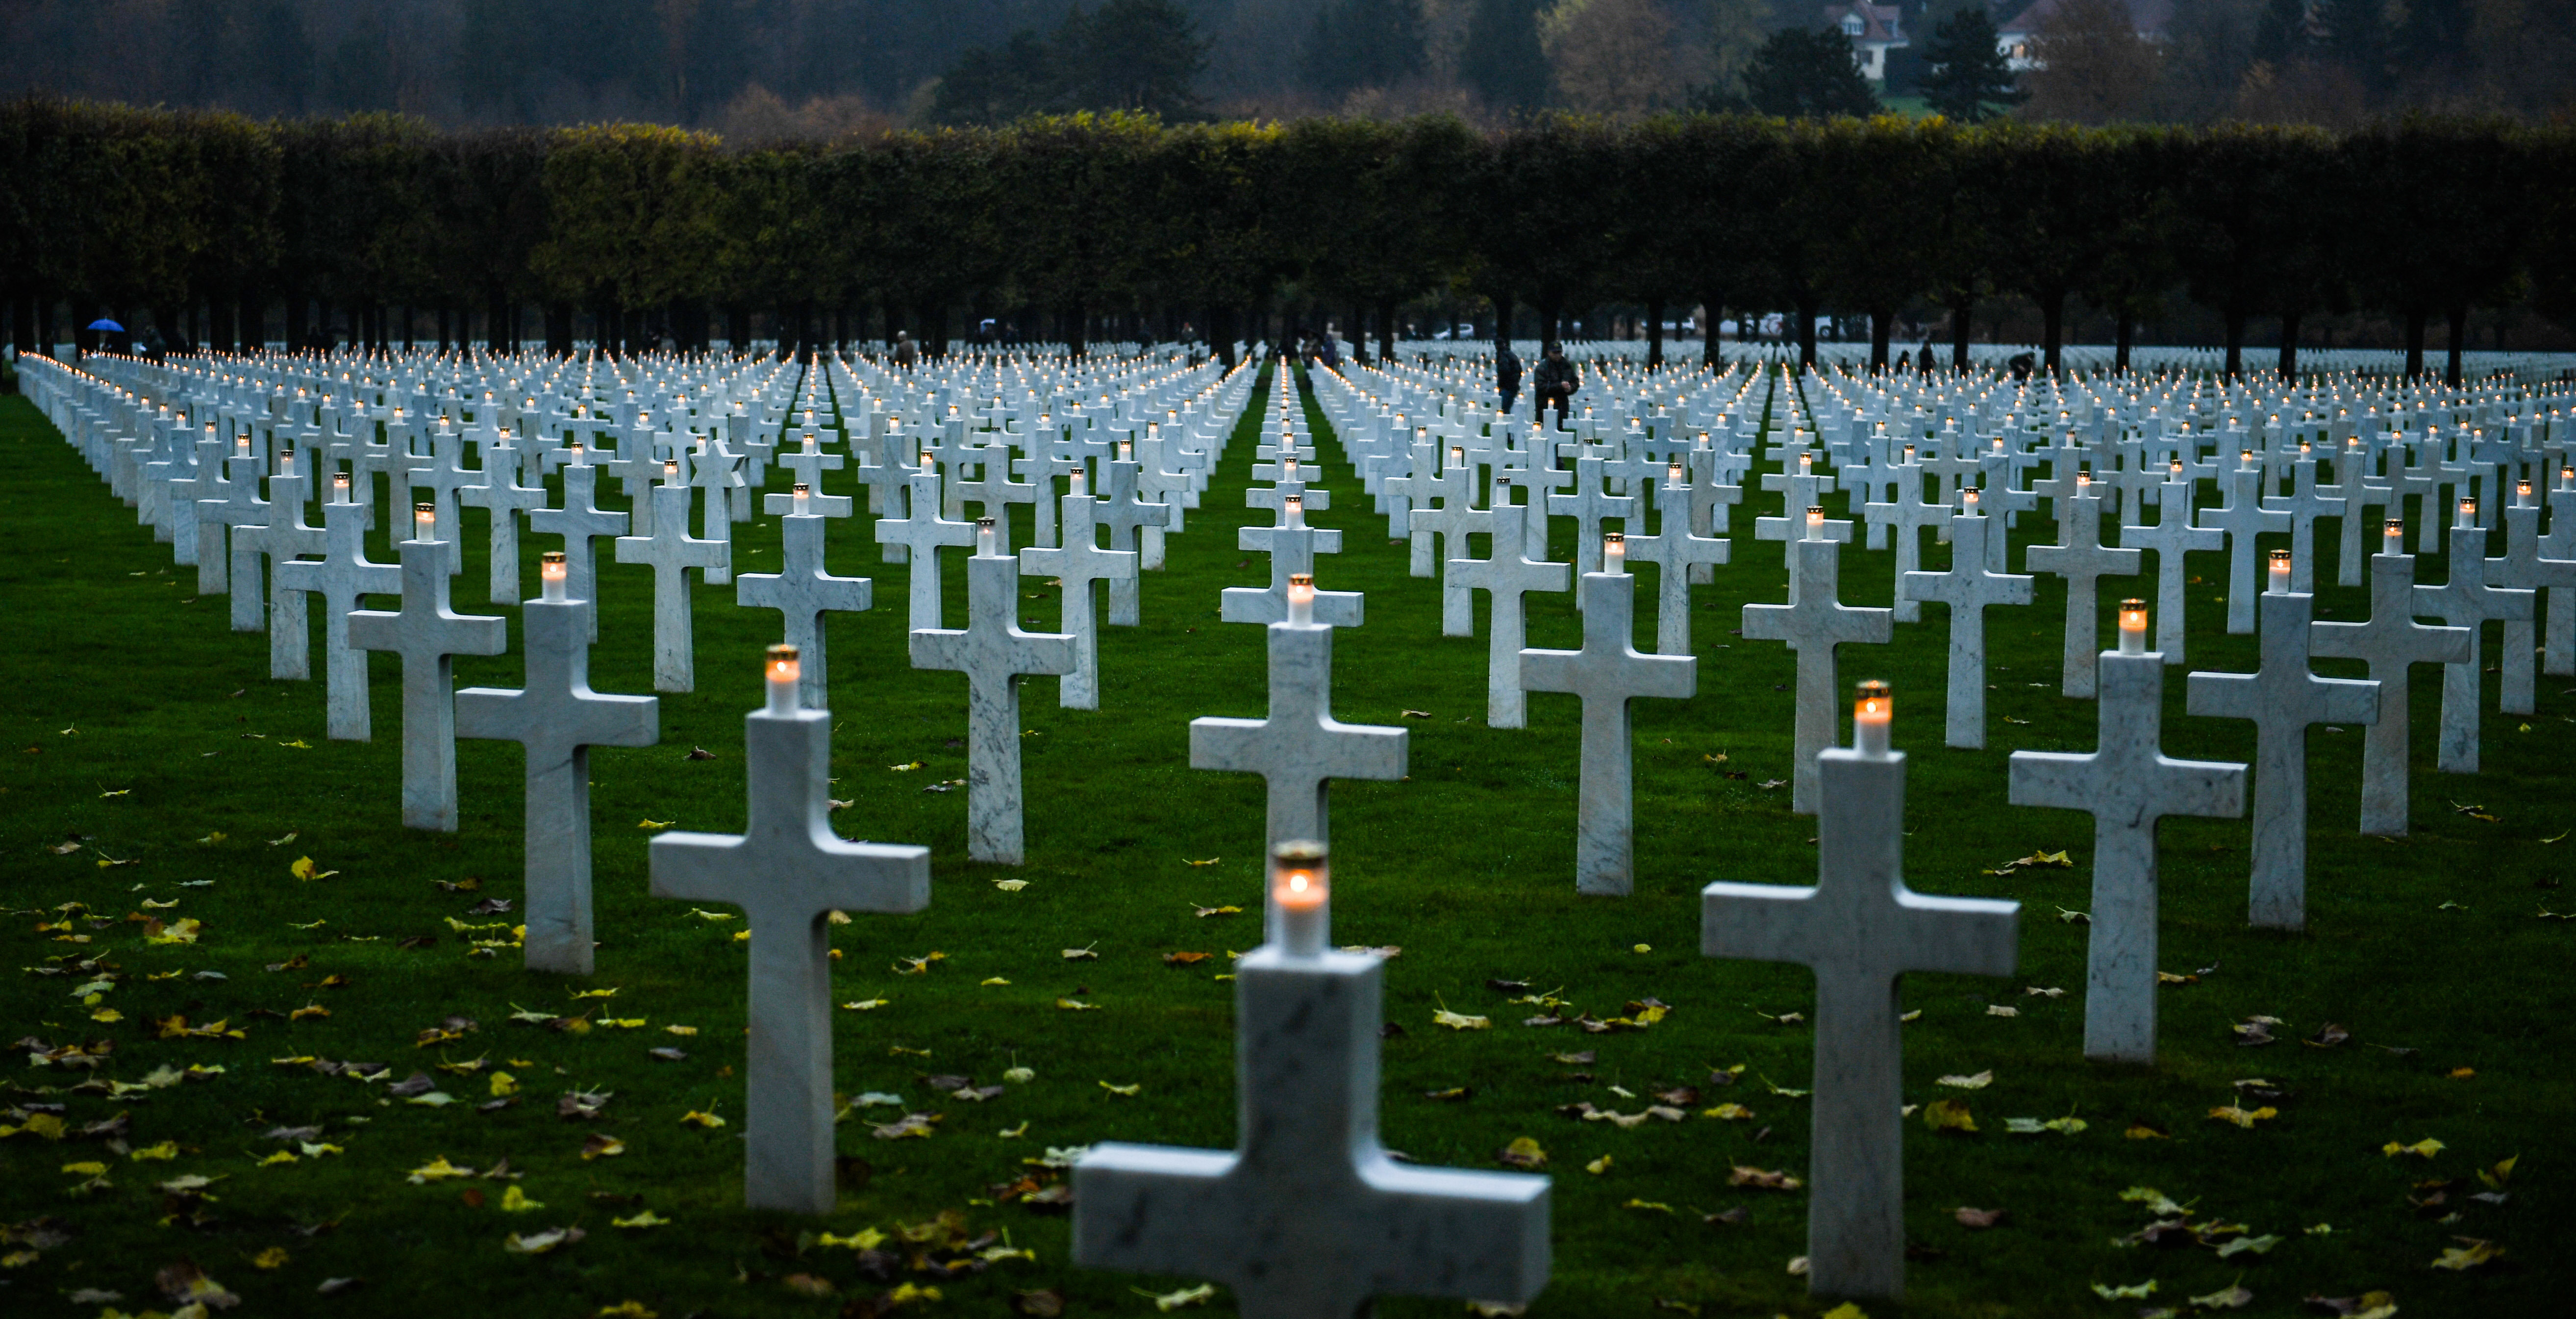 A candle is lit, at the Meuse-Argonne American Cemetery and Memorial near the Argonne Forest in France Nov. 11, 2017 – which is Remembrance Day in France. Volunteers worked with quiet reverence for fallen service members from the Meuse-Argonne Offensive in World War I. Overall, 26,000 Americans died in what turned out to be the longest-lasting battle of World War I.